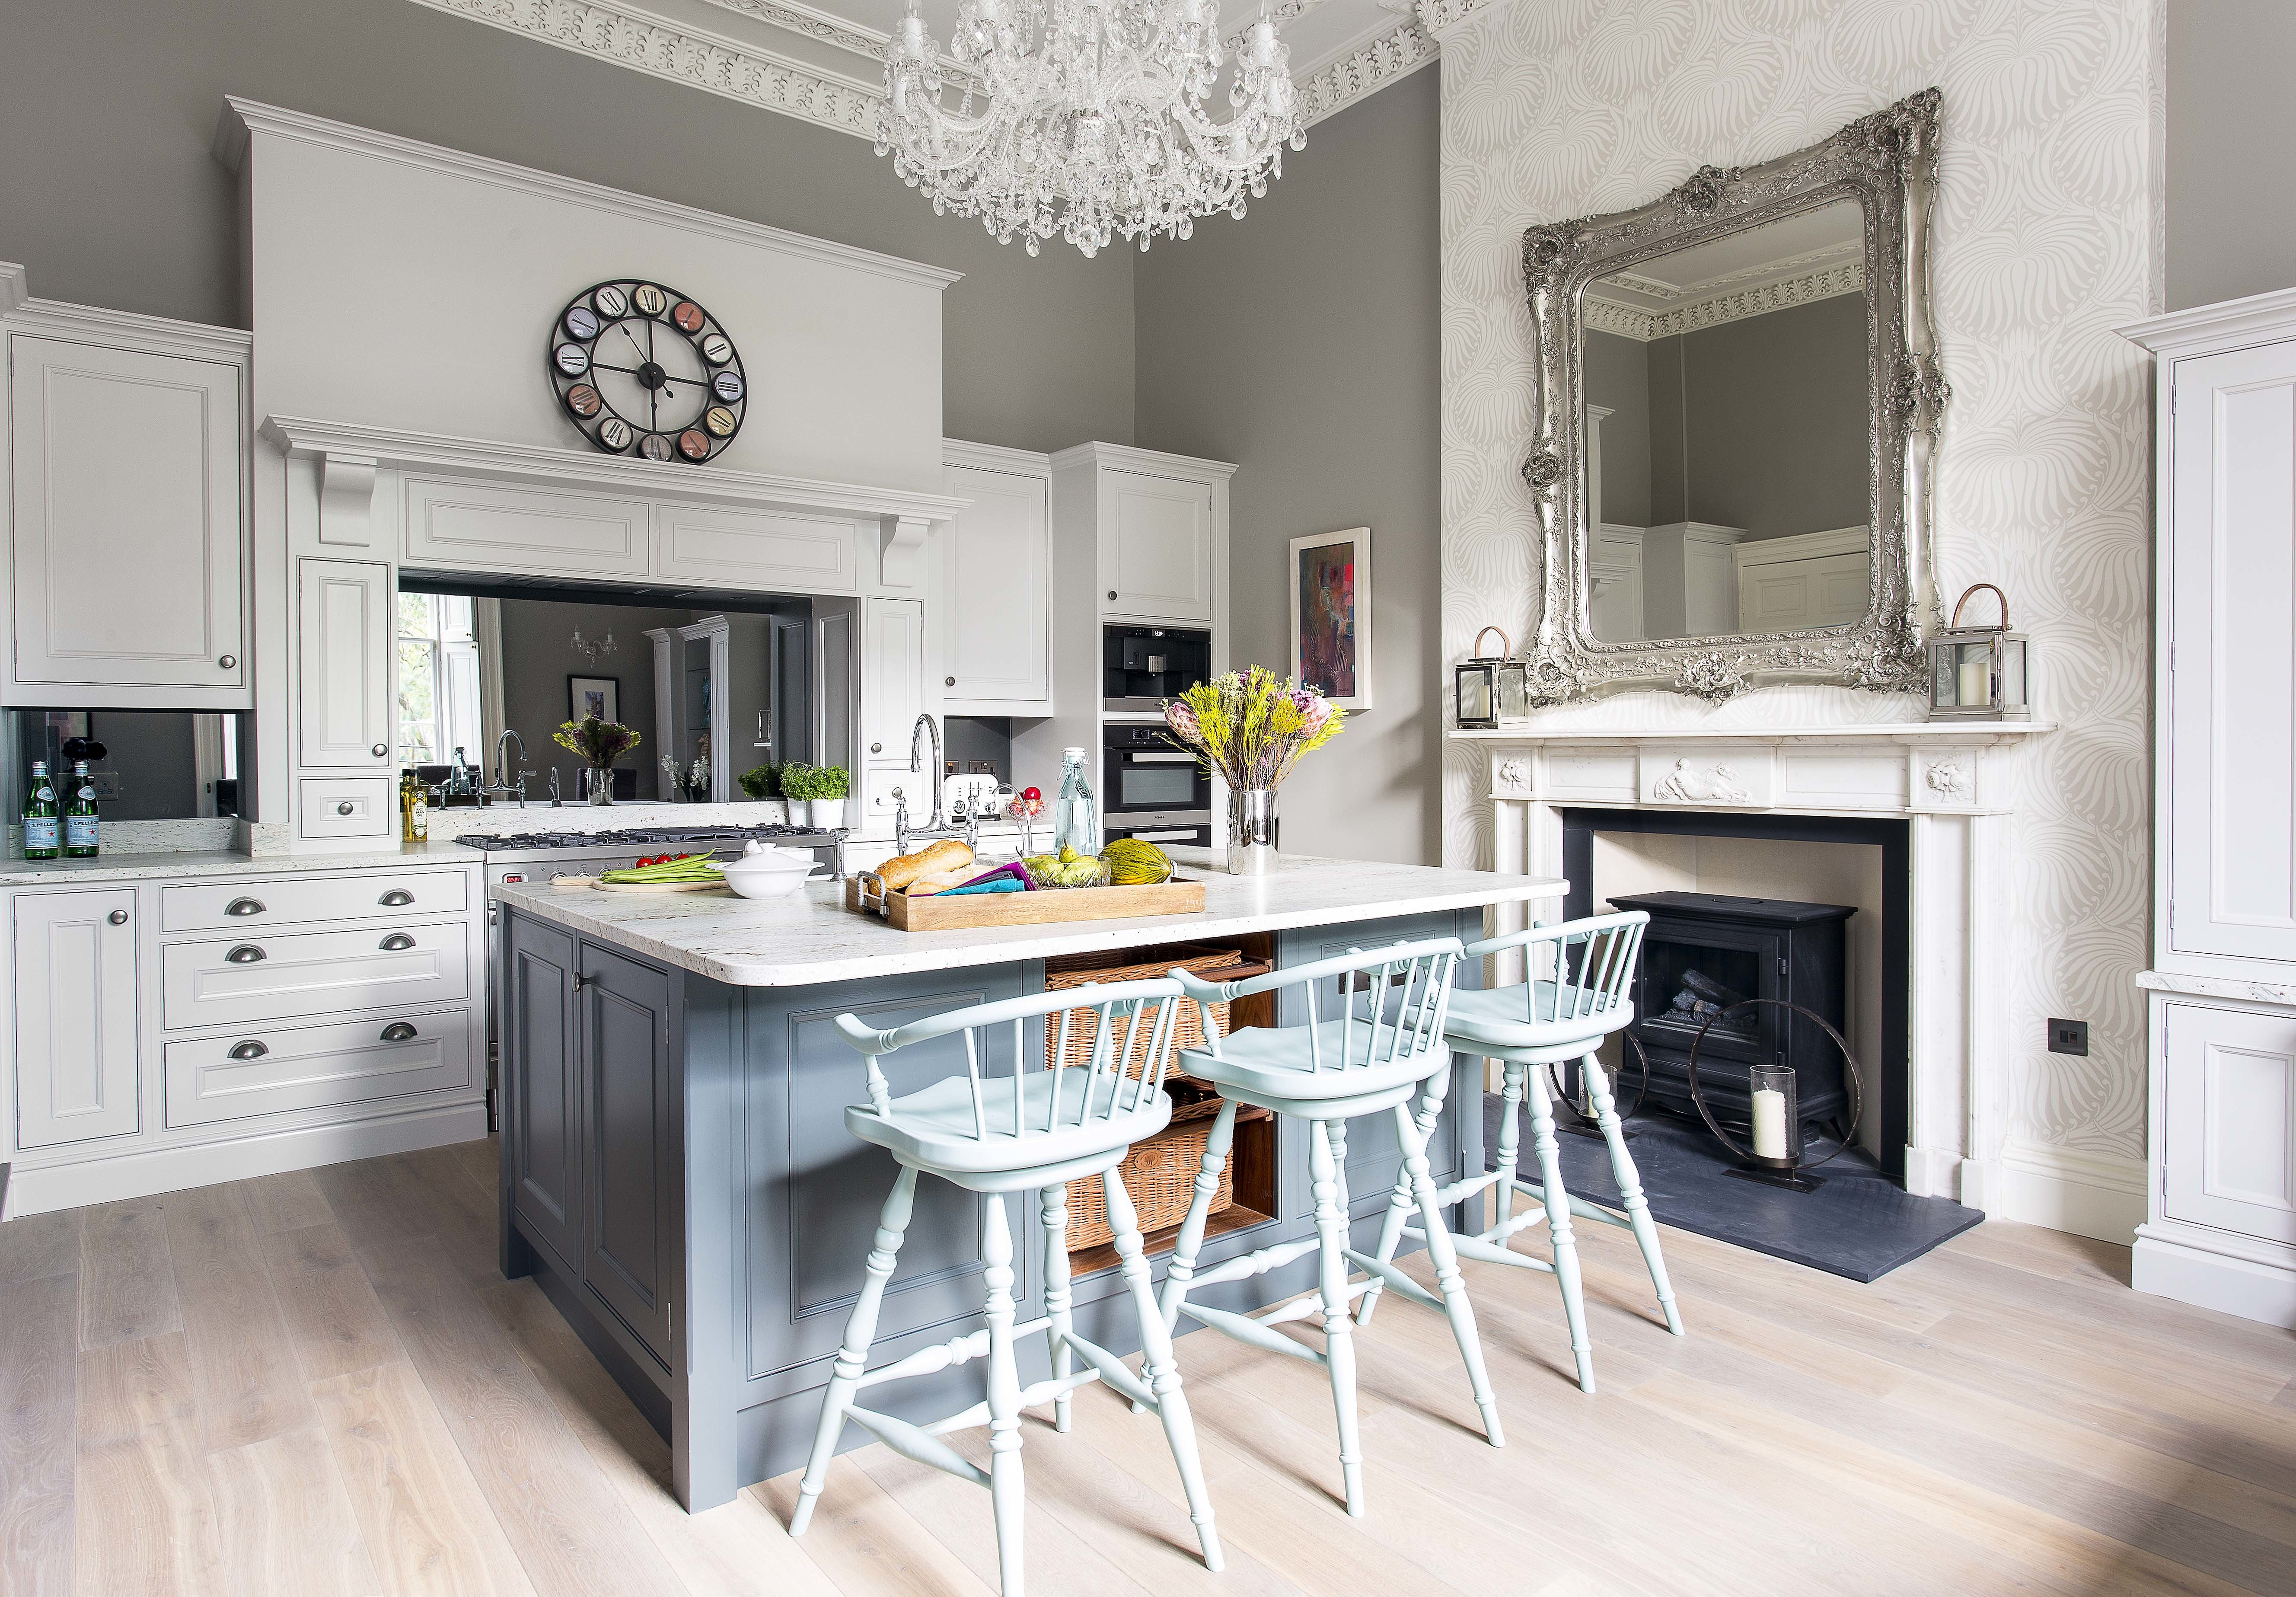 How to Create a Beautiful, Traditional, Kitchen Design